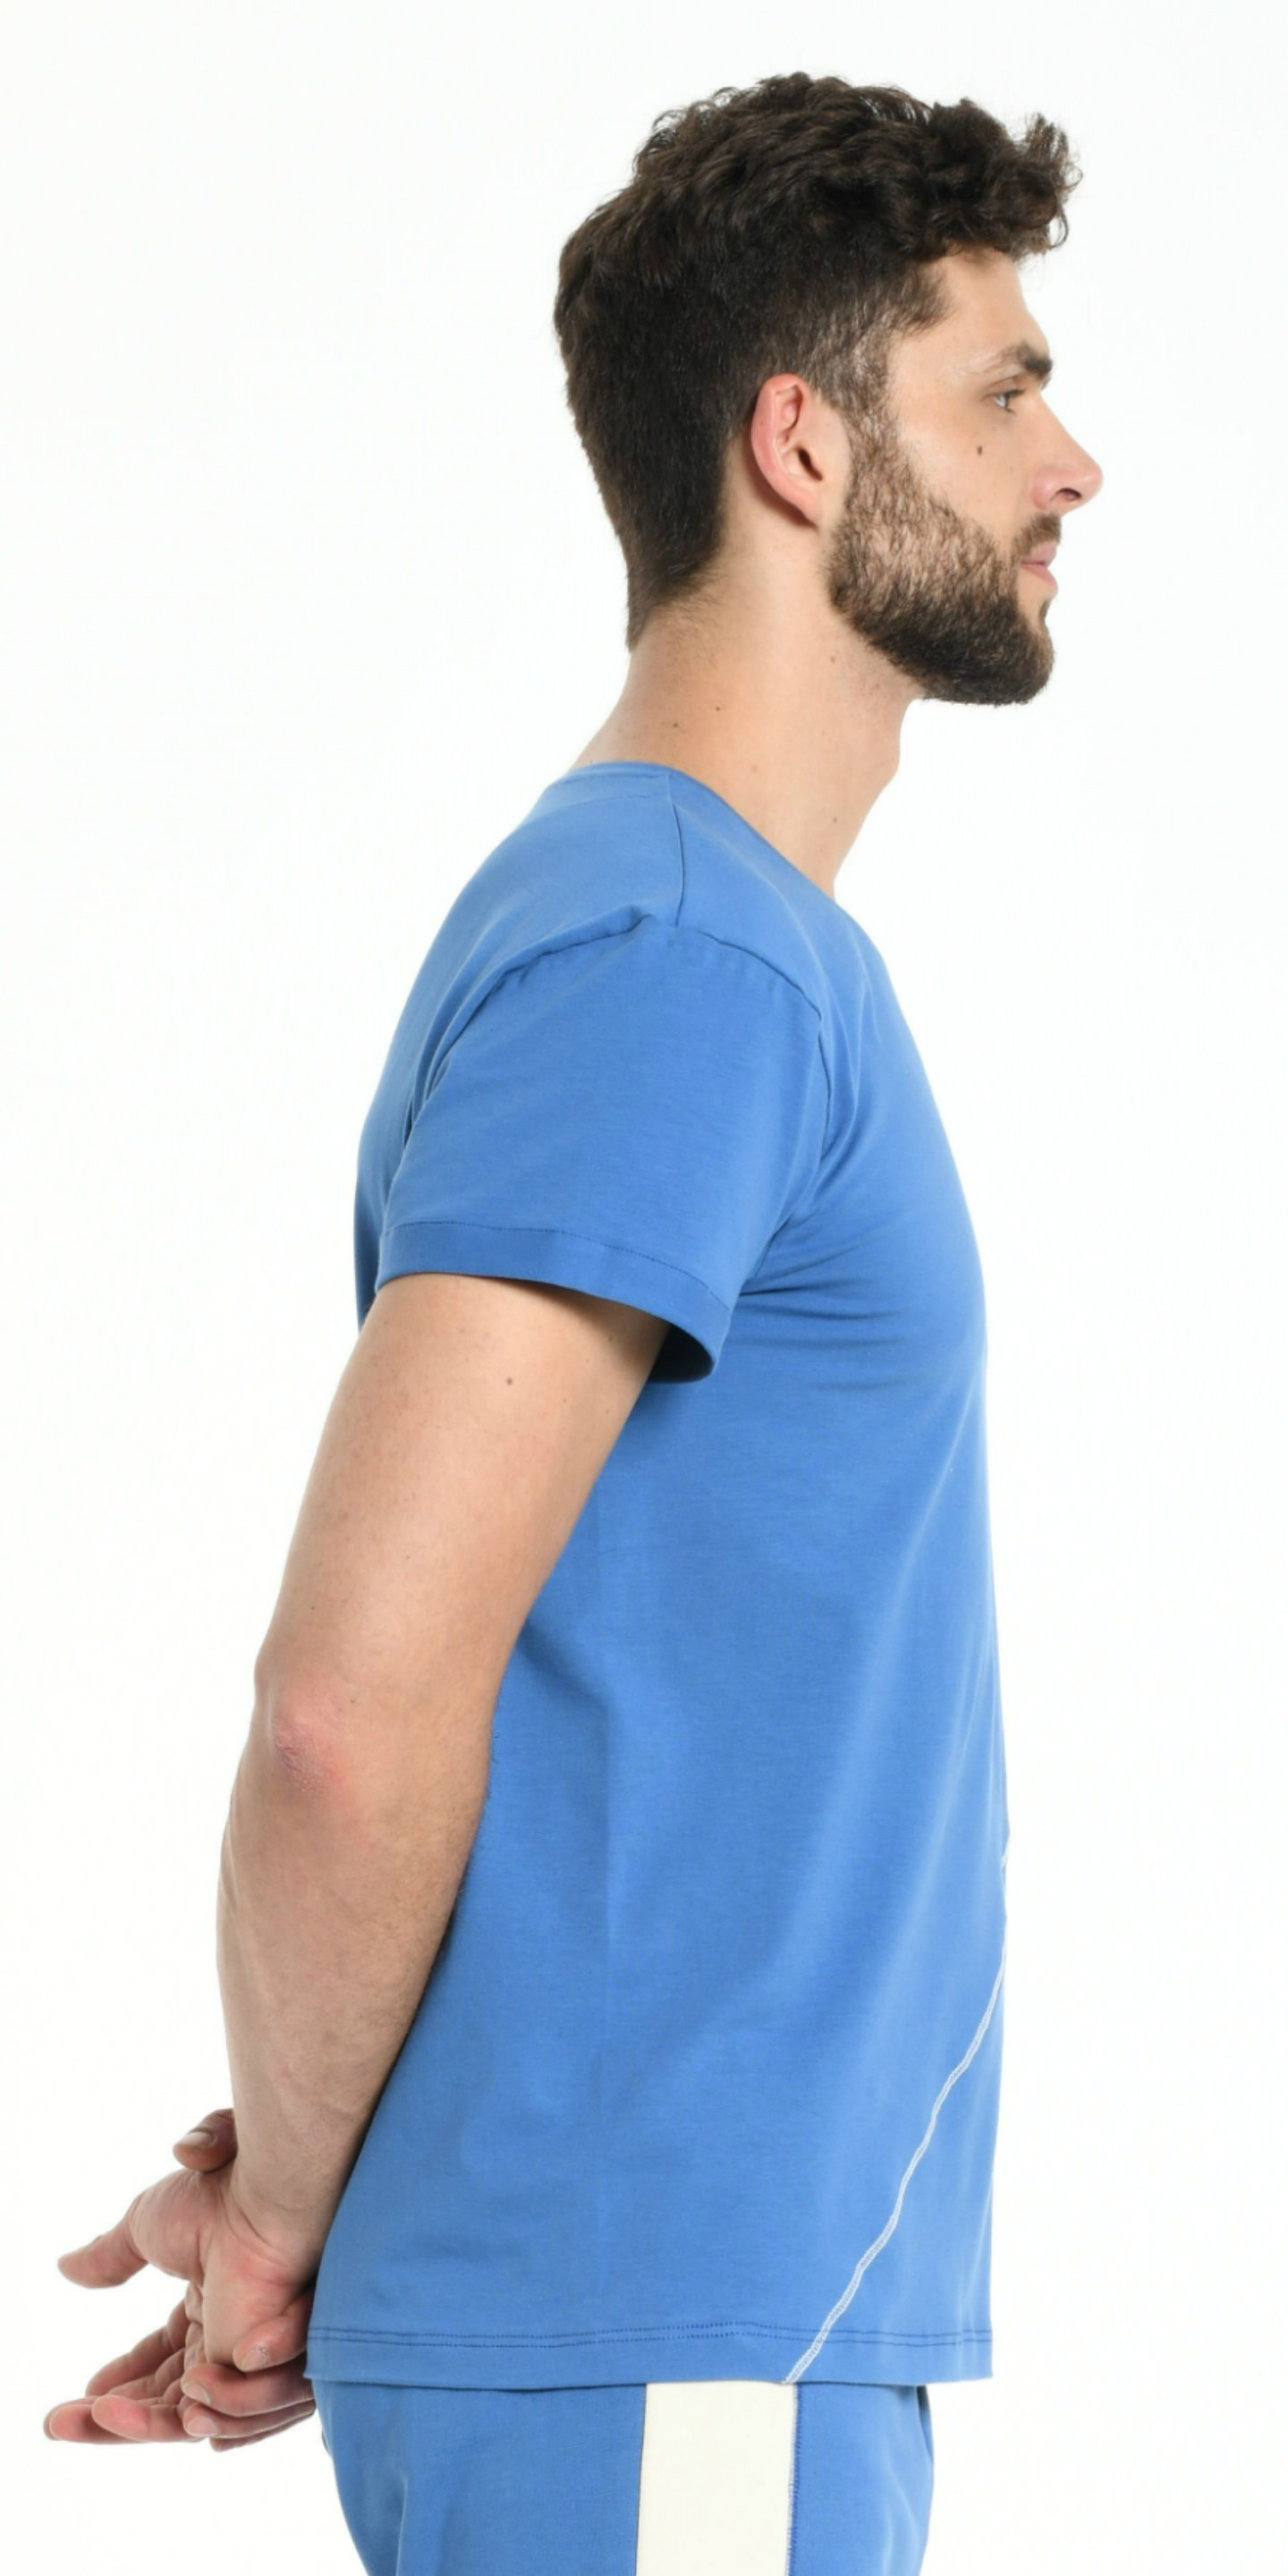 TEE SHIRT BLUE  DIAGONAL SEWING OFF WHITE from BEARD & FRINGE